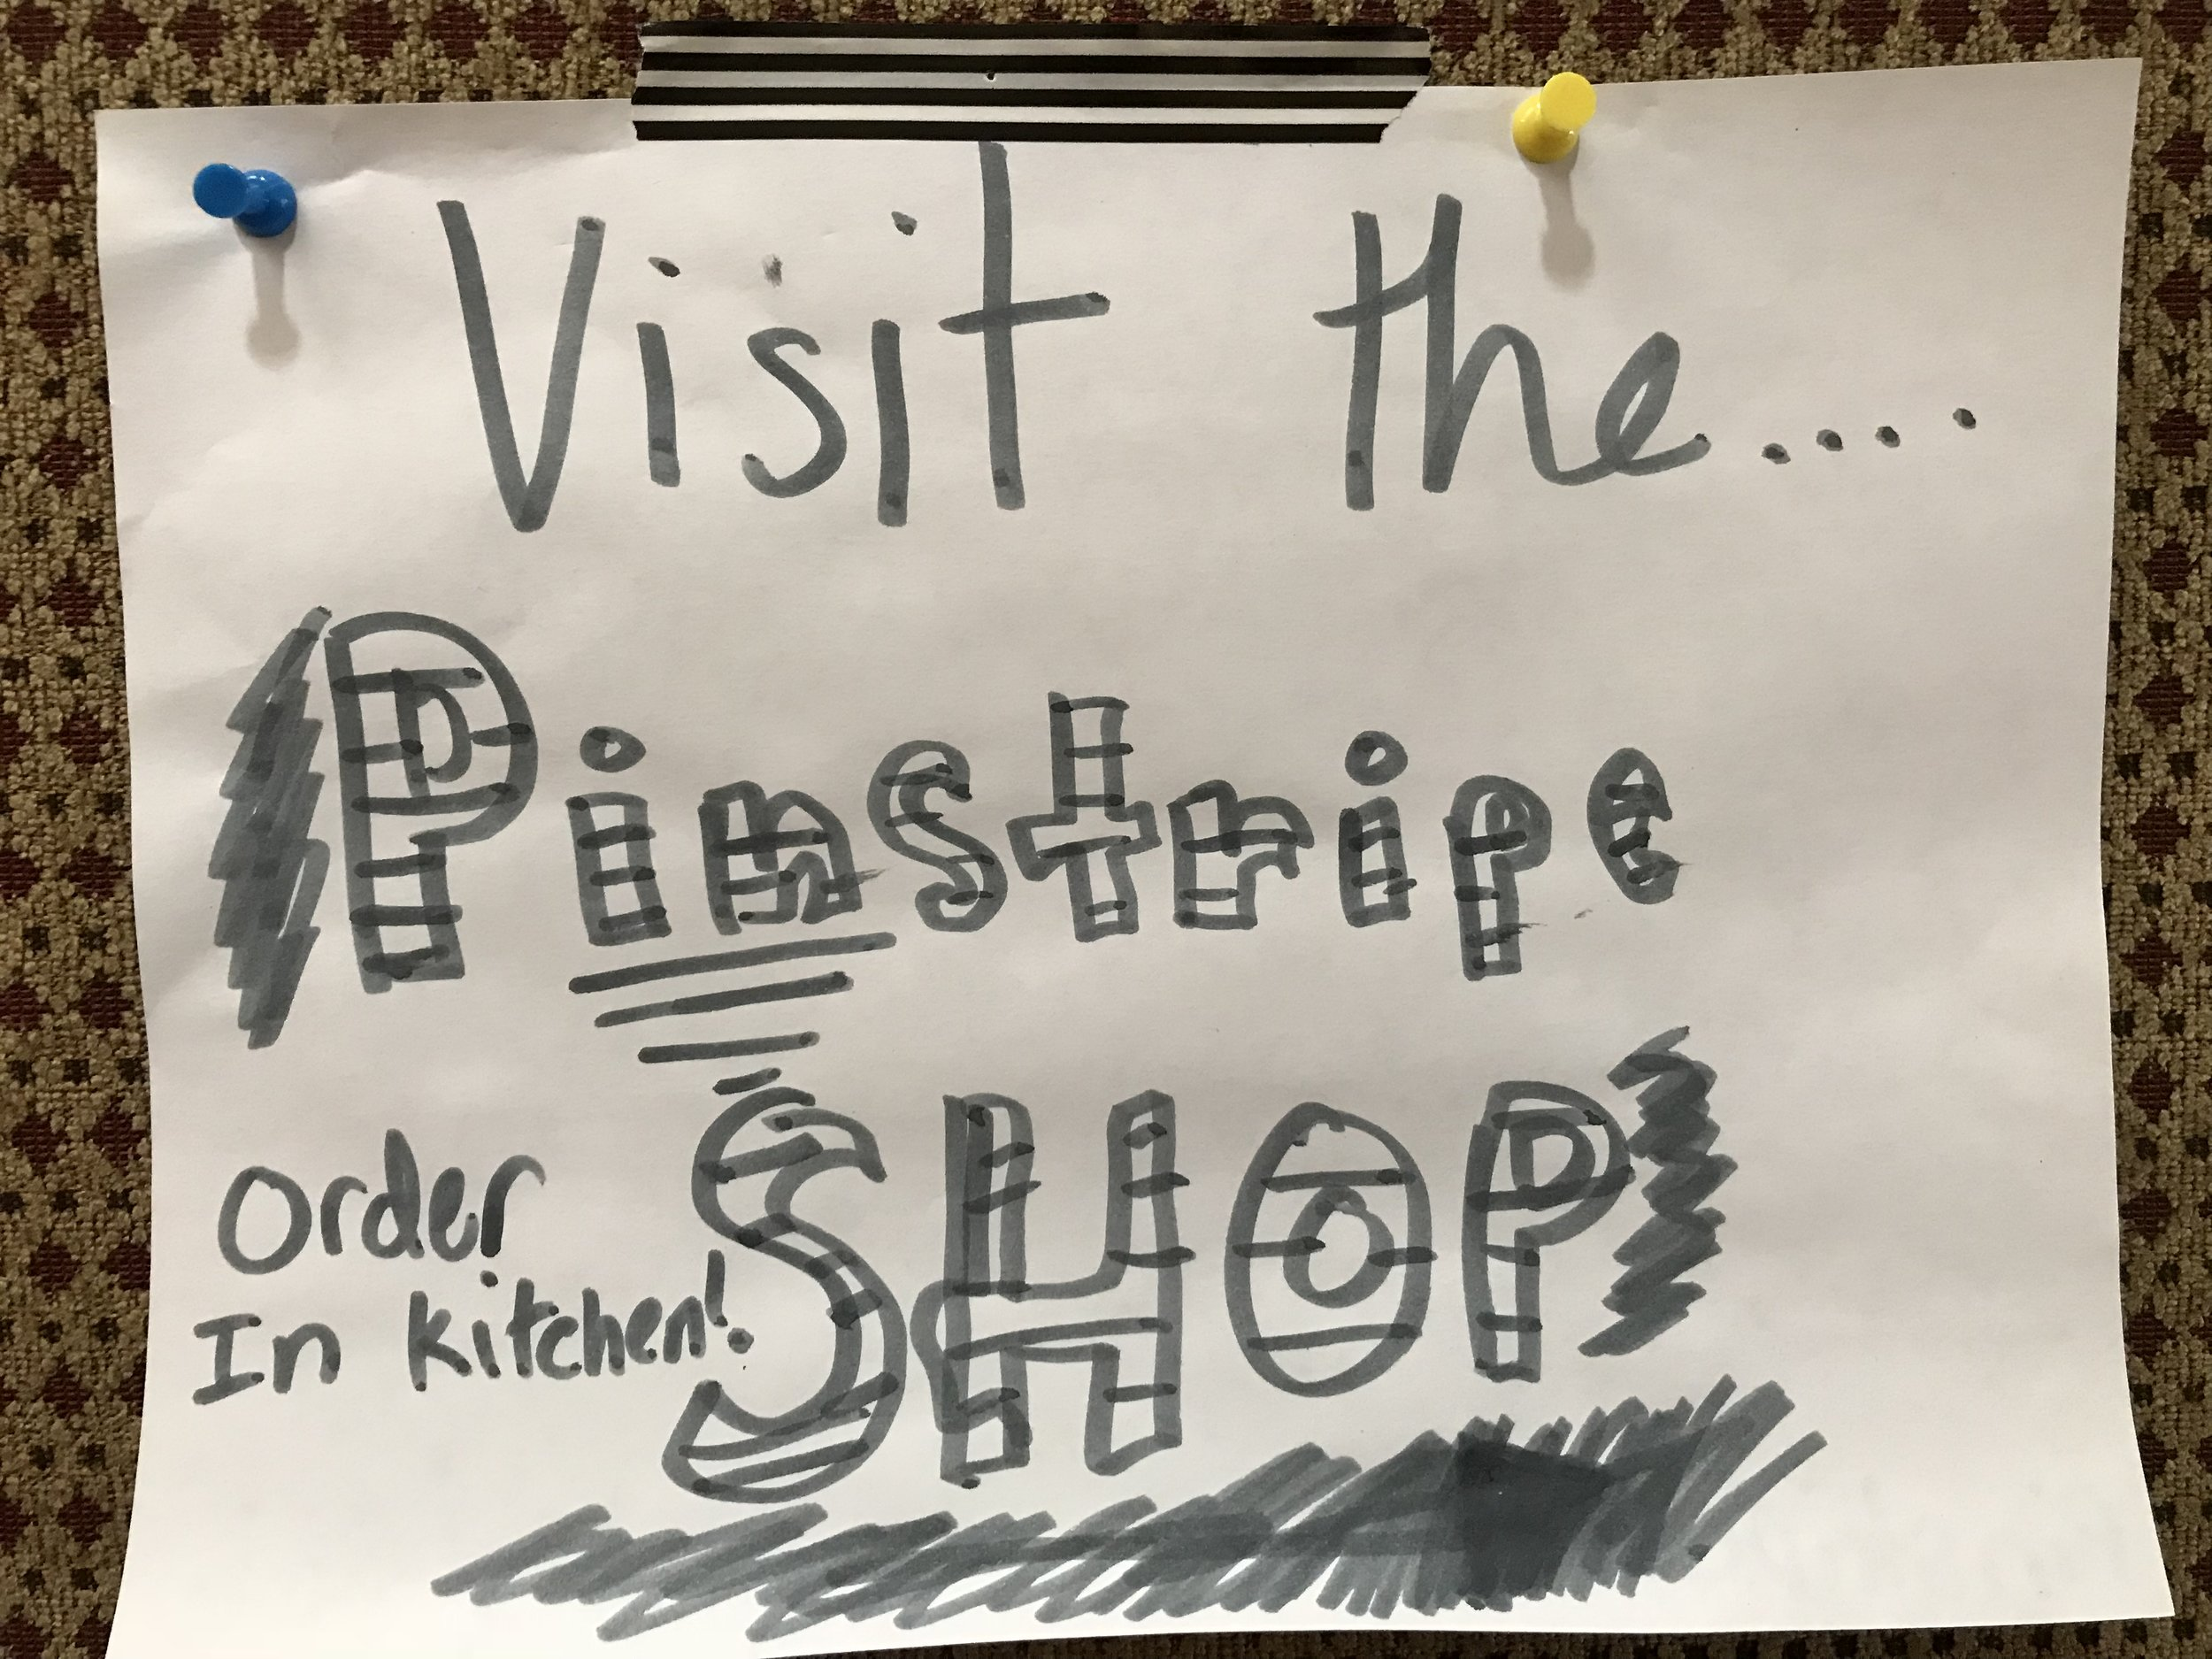 The Pinstripe Shop